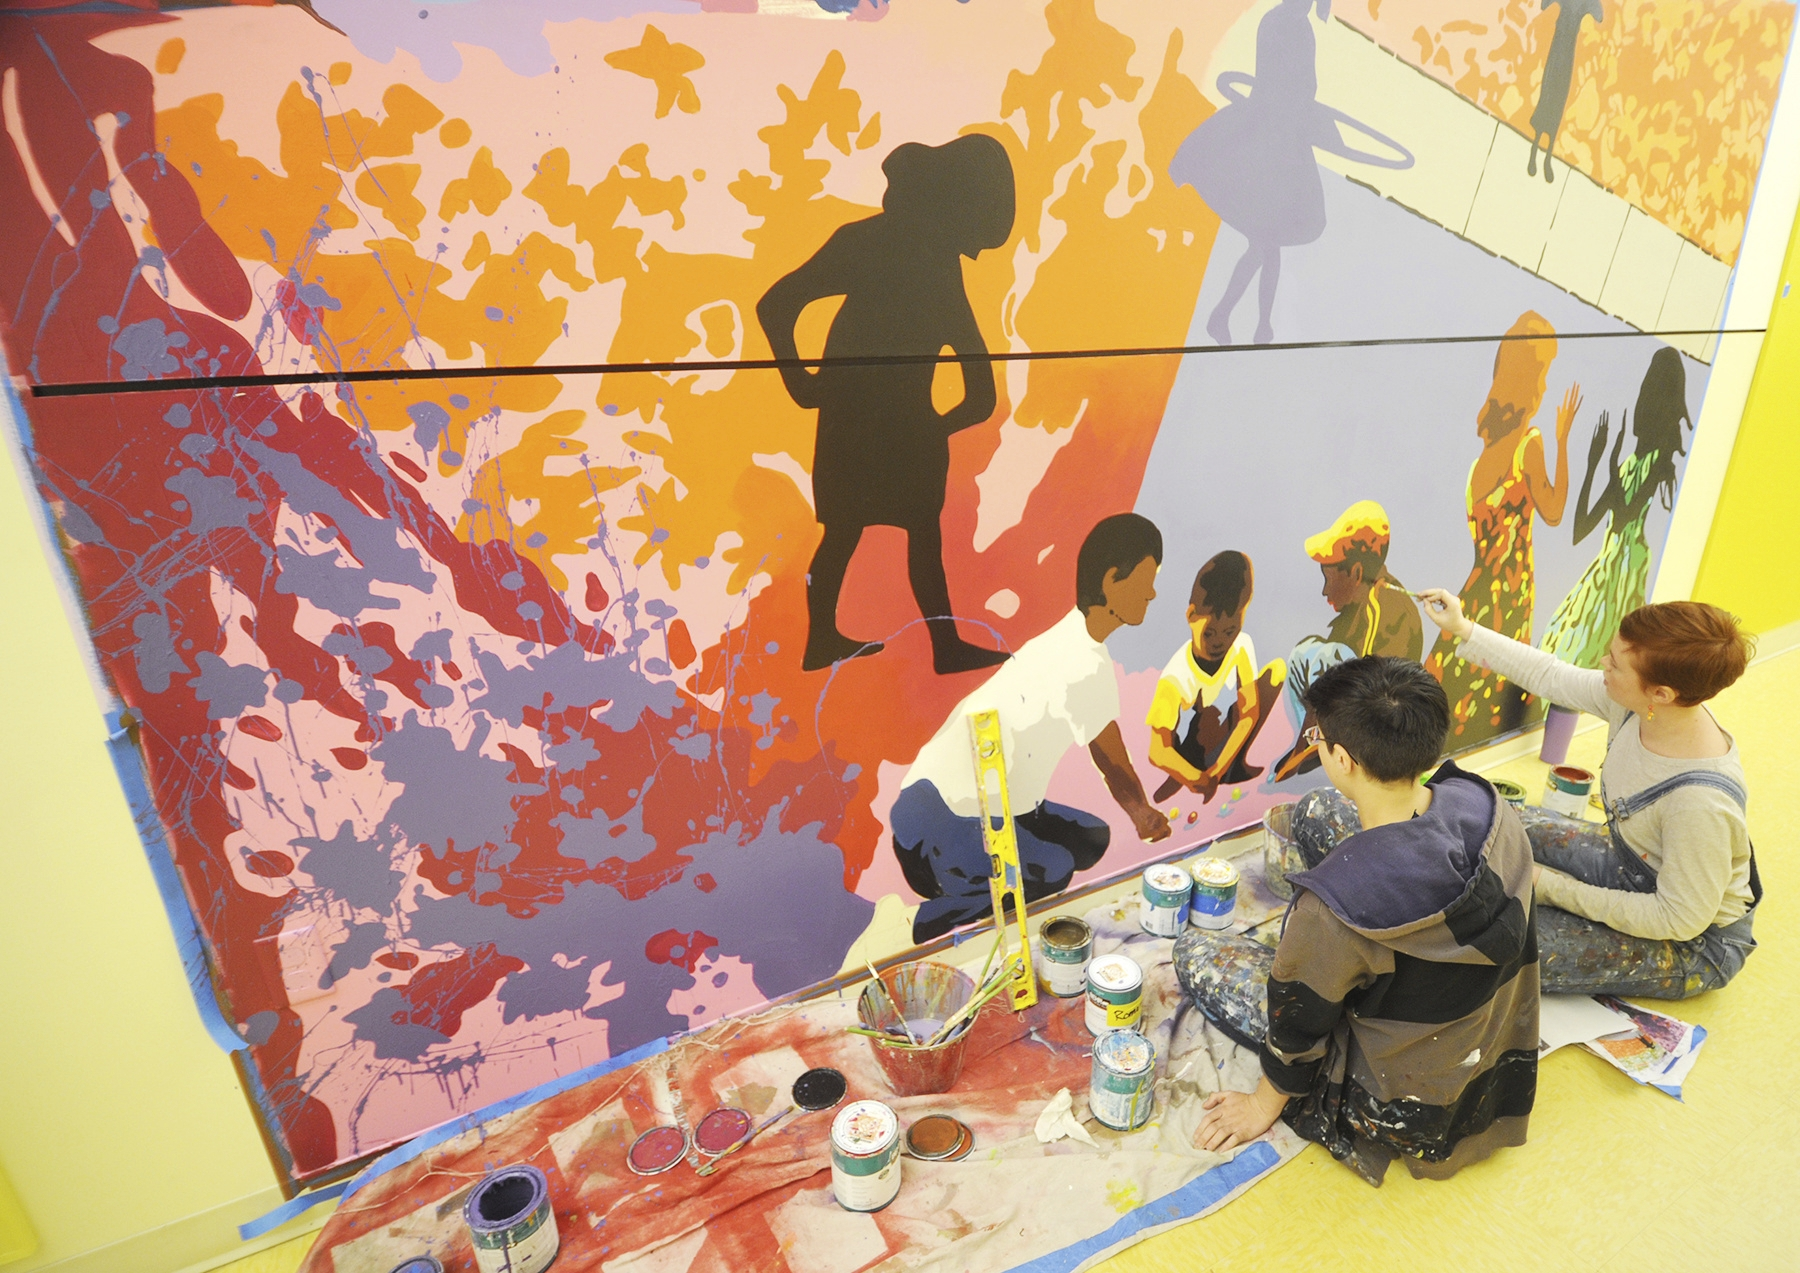 Monarch Academy getting myriad of murals from local artist